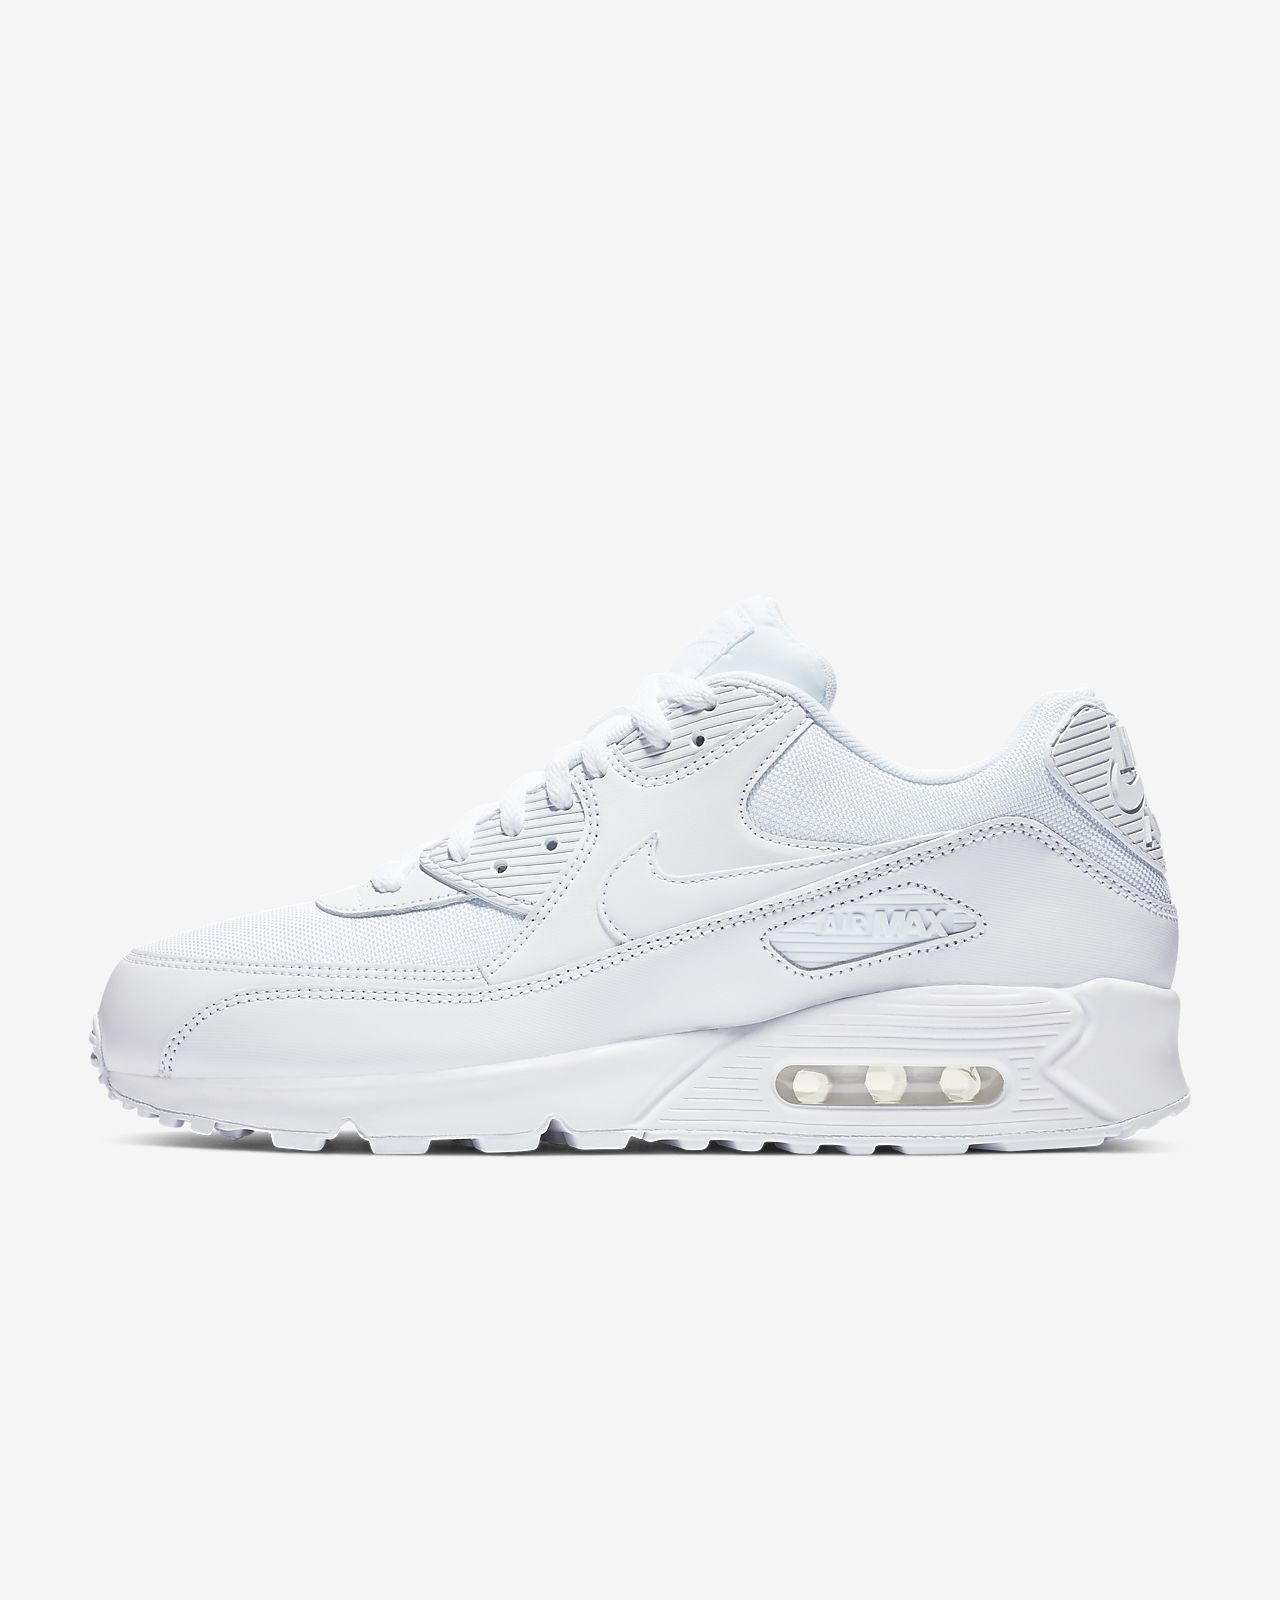 20639a011d90 Nike Air Max 90 Essential Men s Shoe. Nike.com AU